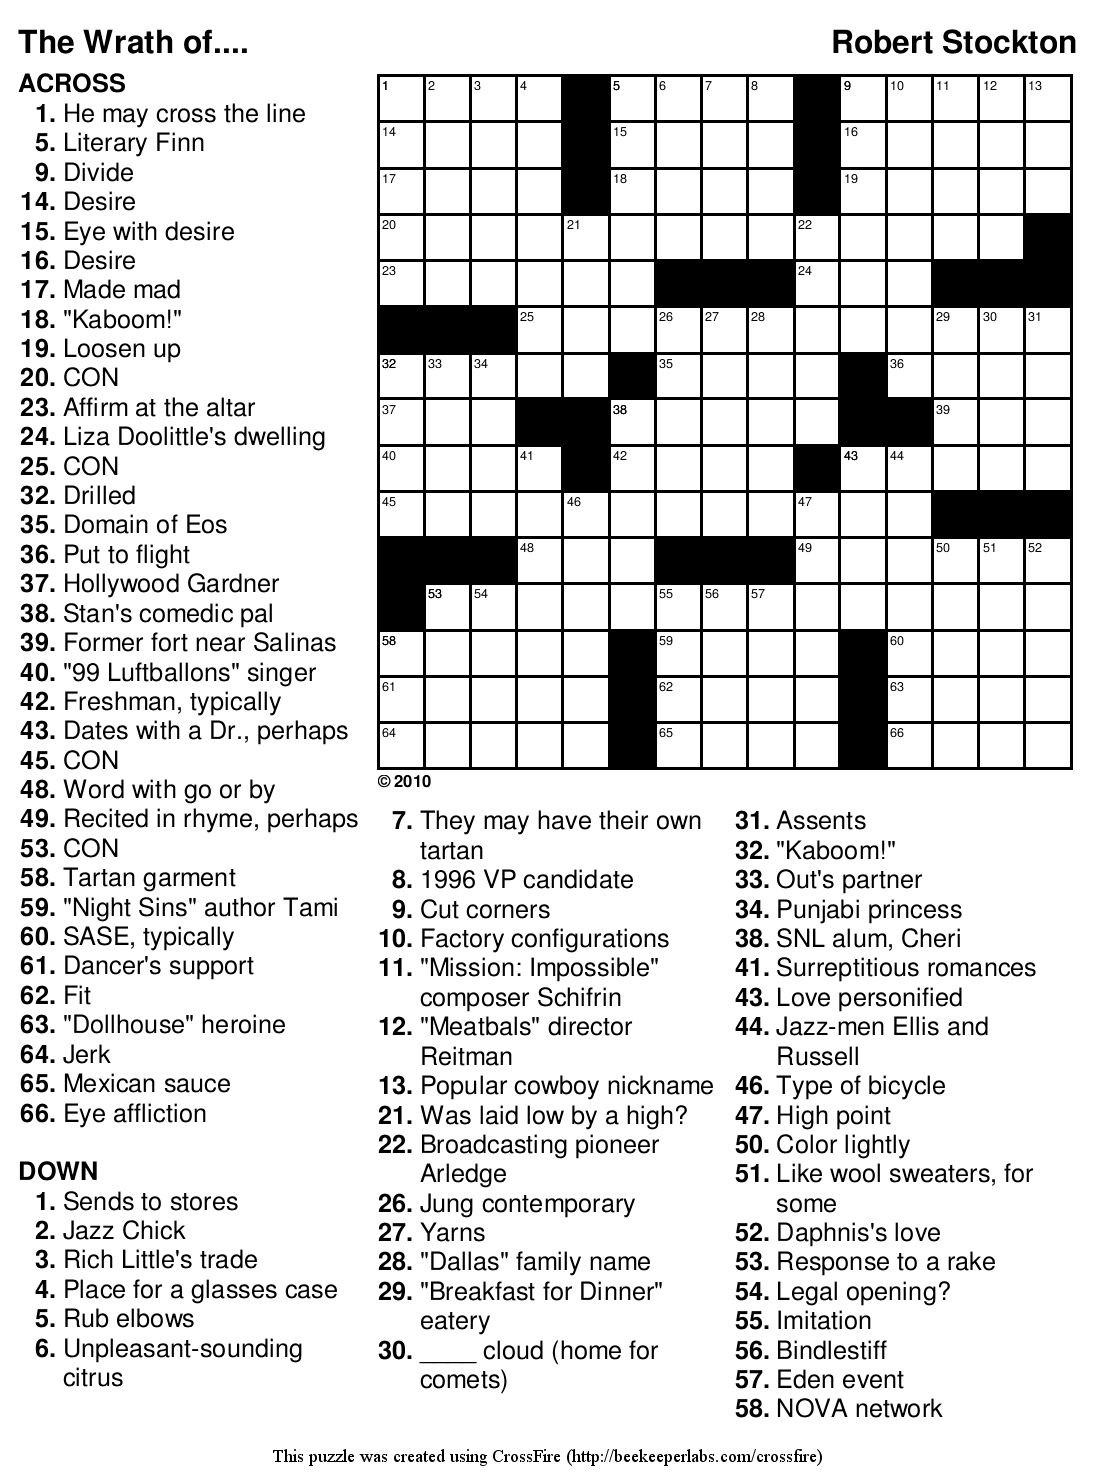 Marvelous Crossword Puzzles Easy Printable Free Org | Chas's Board - Printable Crossword Puzzles For Adults With Answers